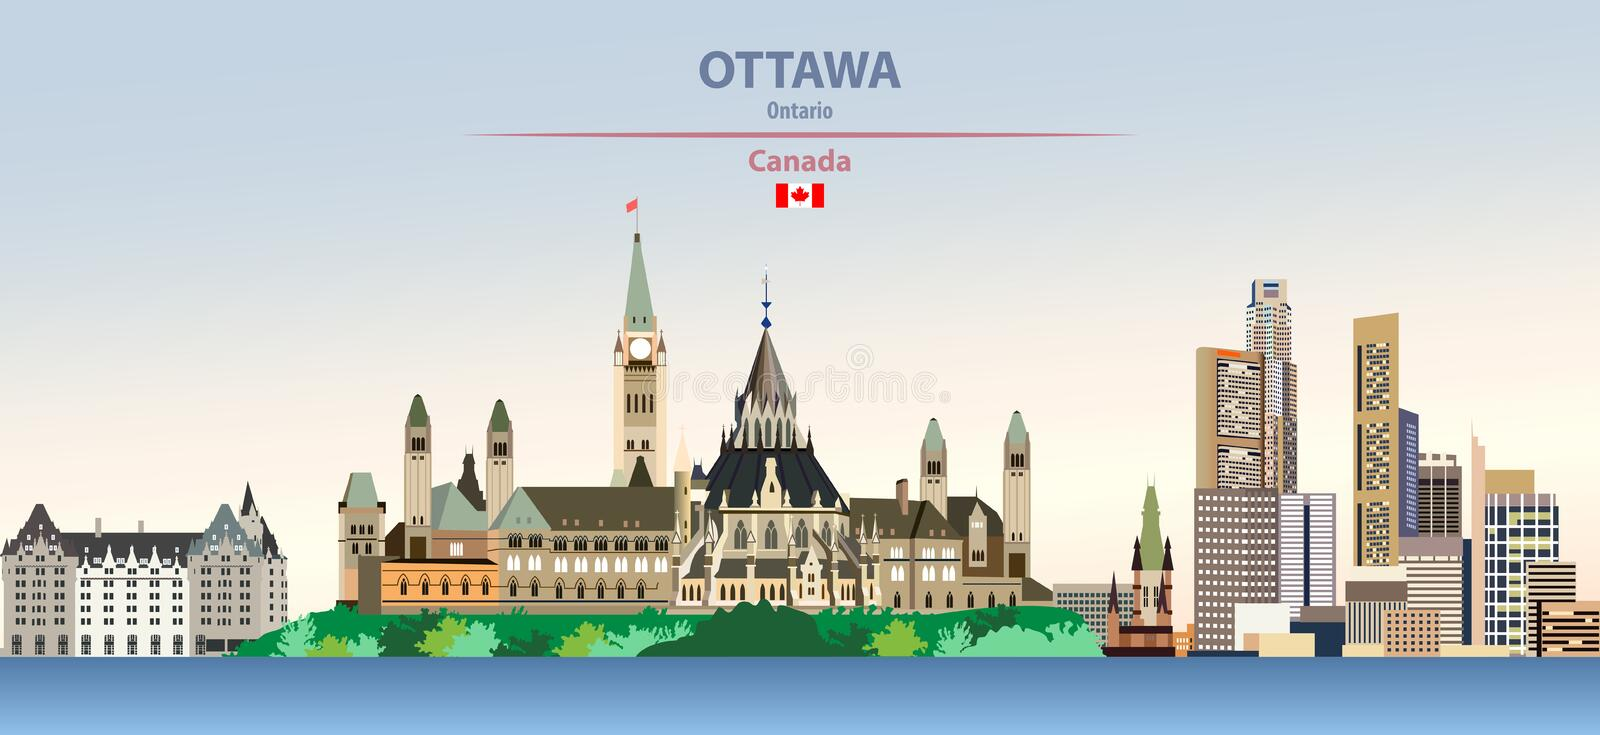 Vector illustration of Ottawa city skyline on colorful gradient beautiful day sky background with flag of Canada stock illustration